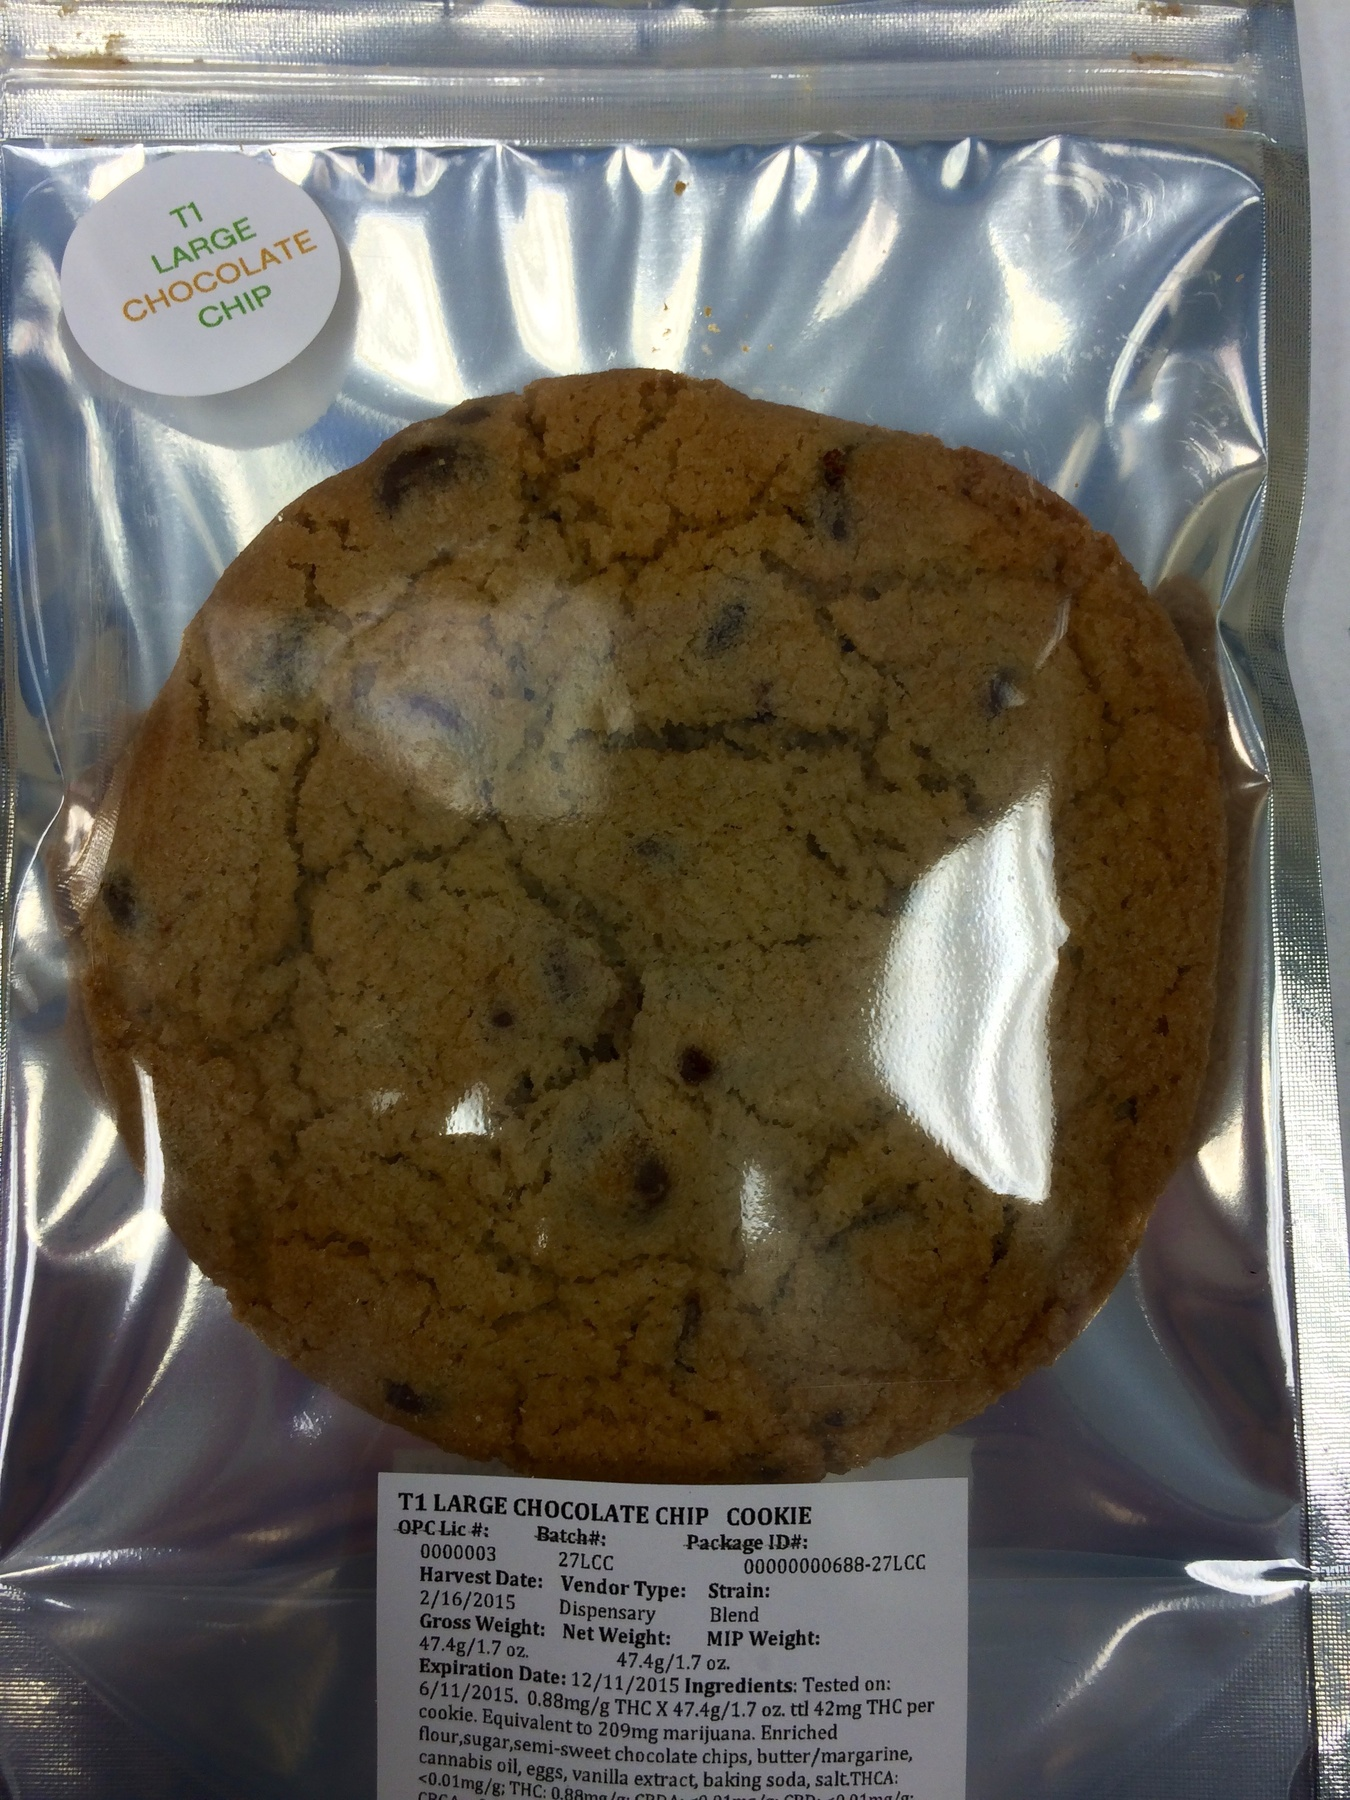 Curaleaf T1 Large Chocolate Chip Cookie Product image